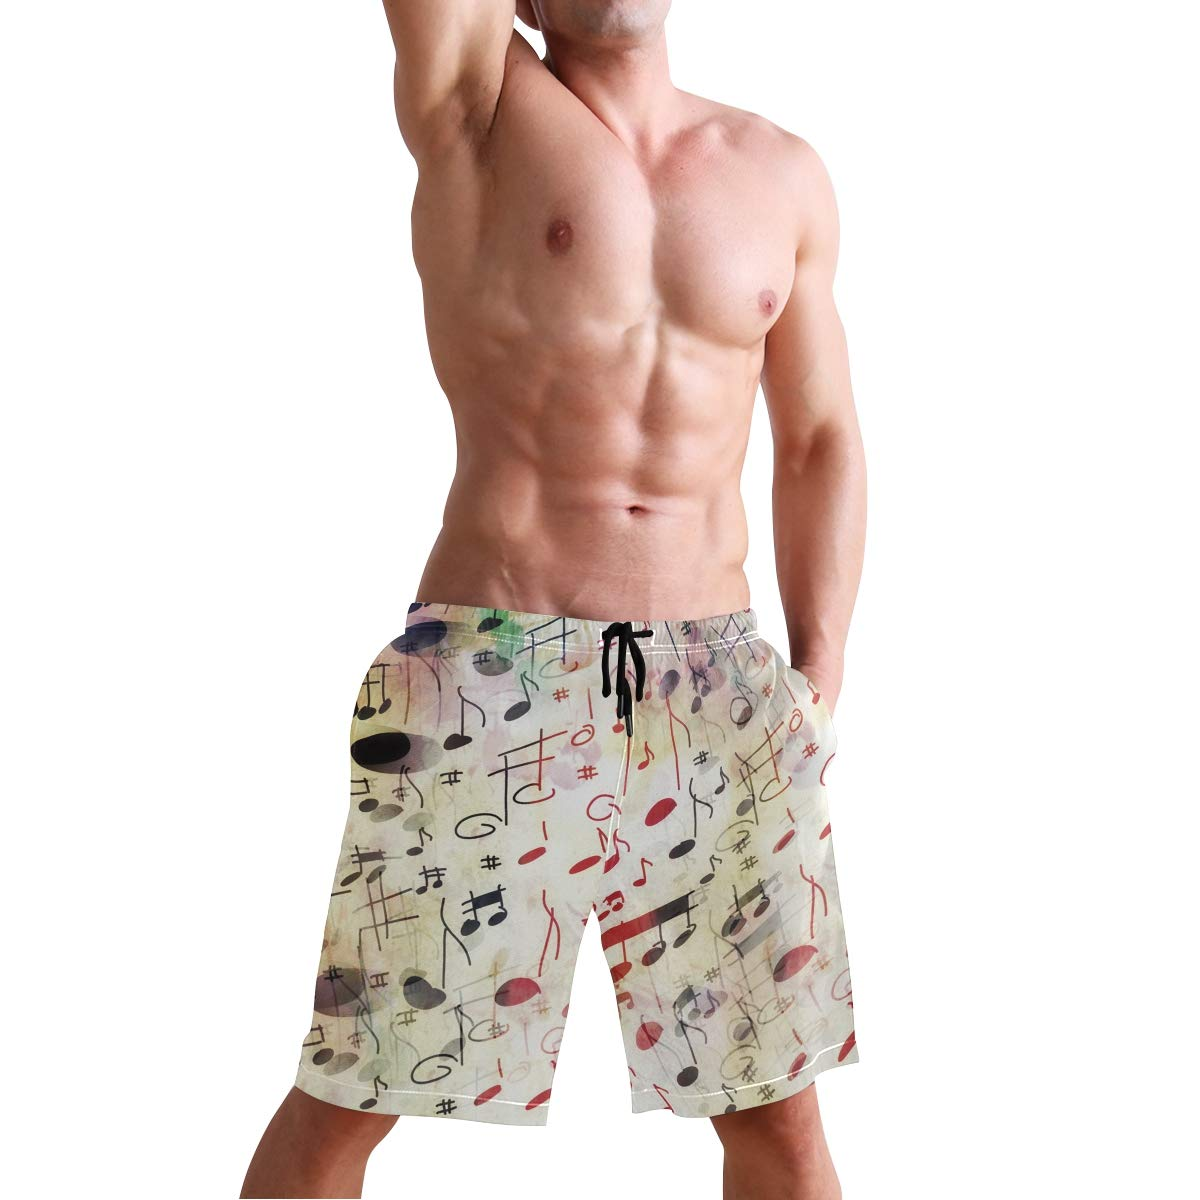 REBACAT Watercolor Music Note Mens Swim Trunks Quick Dry Beach Board Shorts with Drawstring Pocket